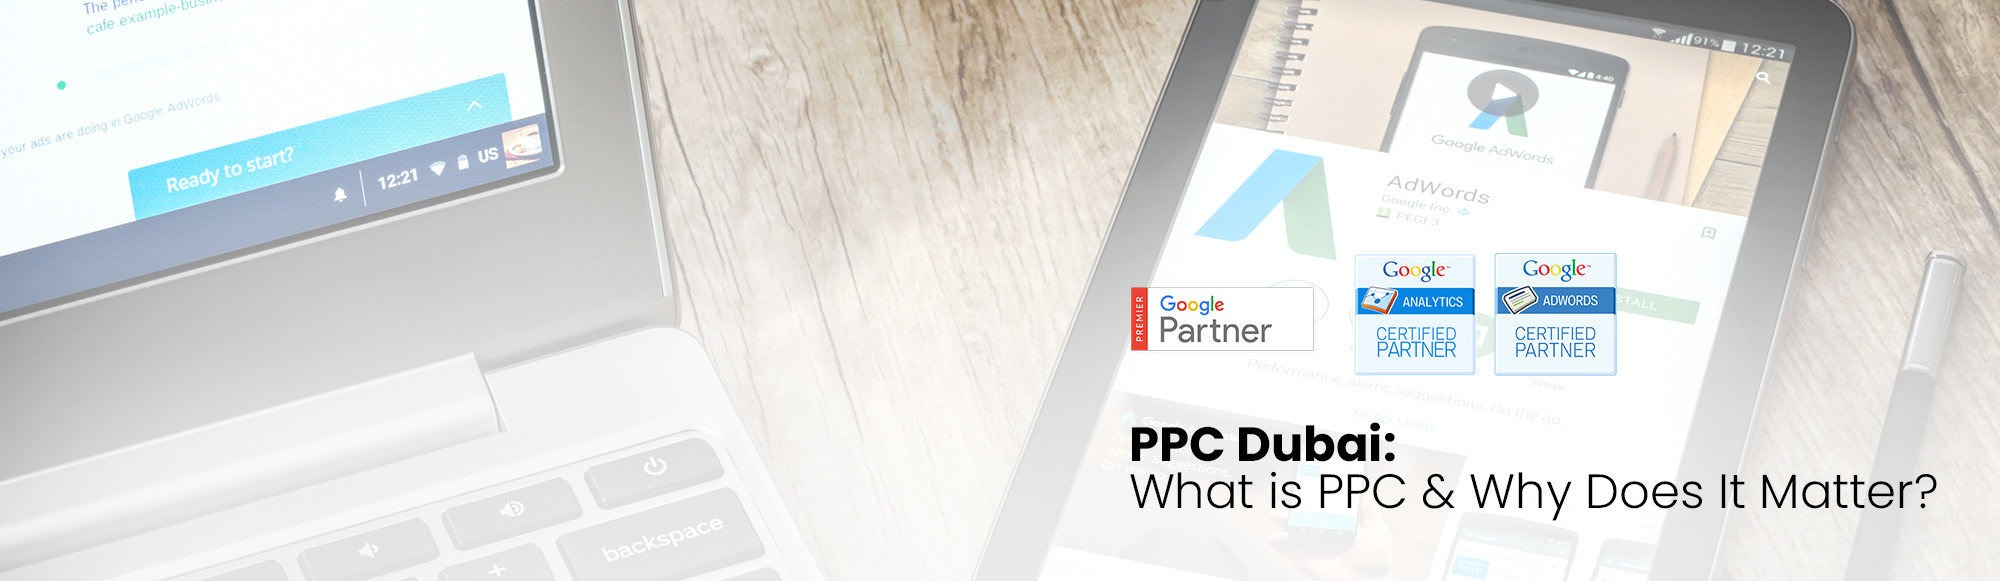 PPC Dubai: What is PPC and Why Does it Matter?